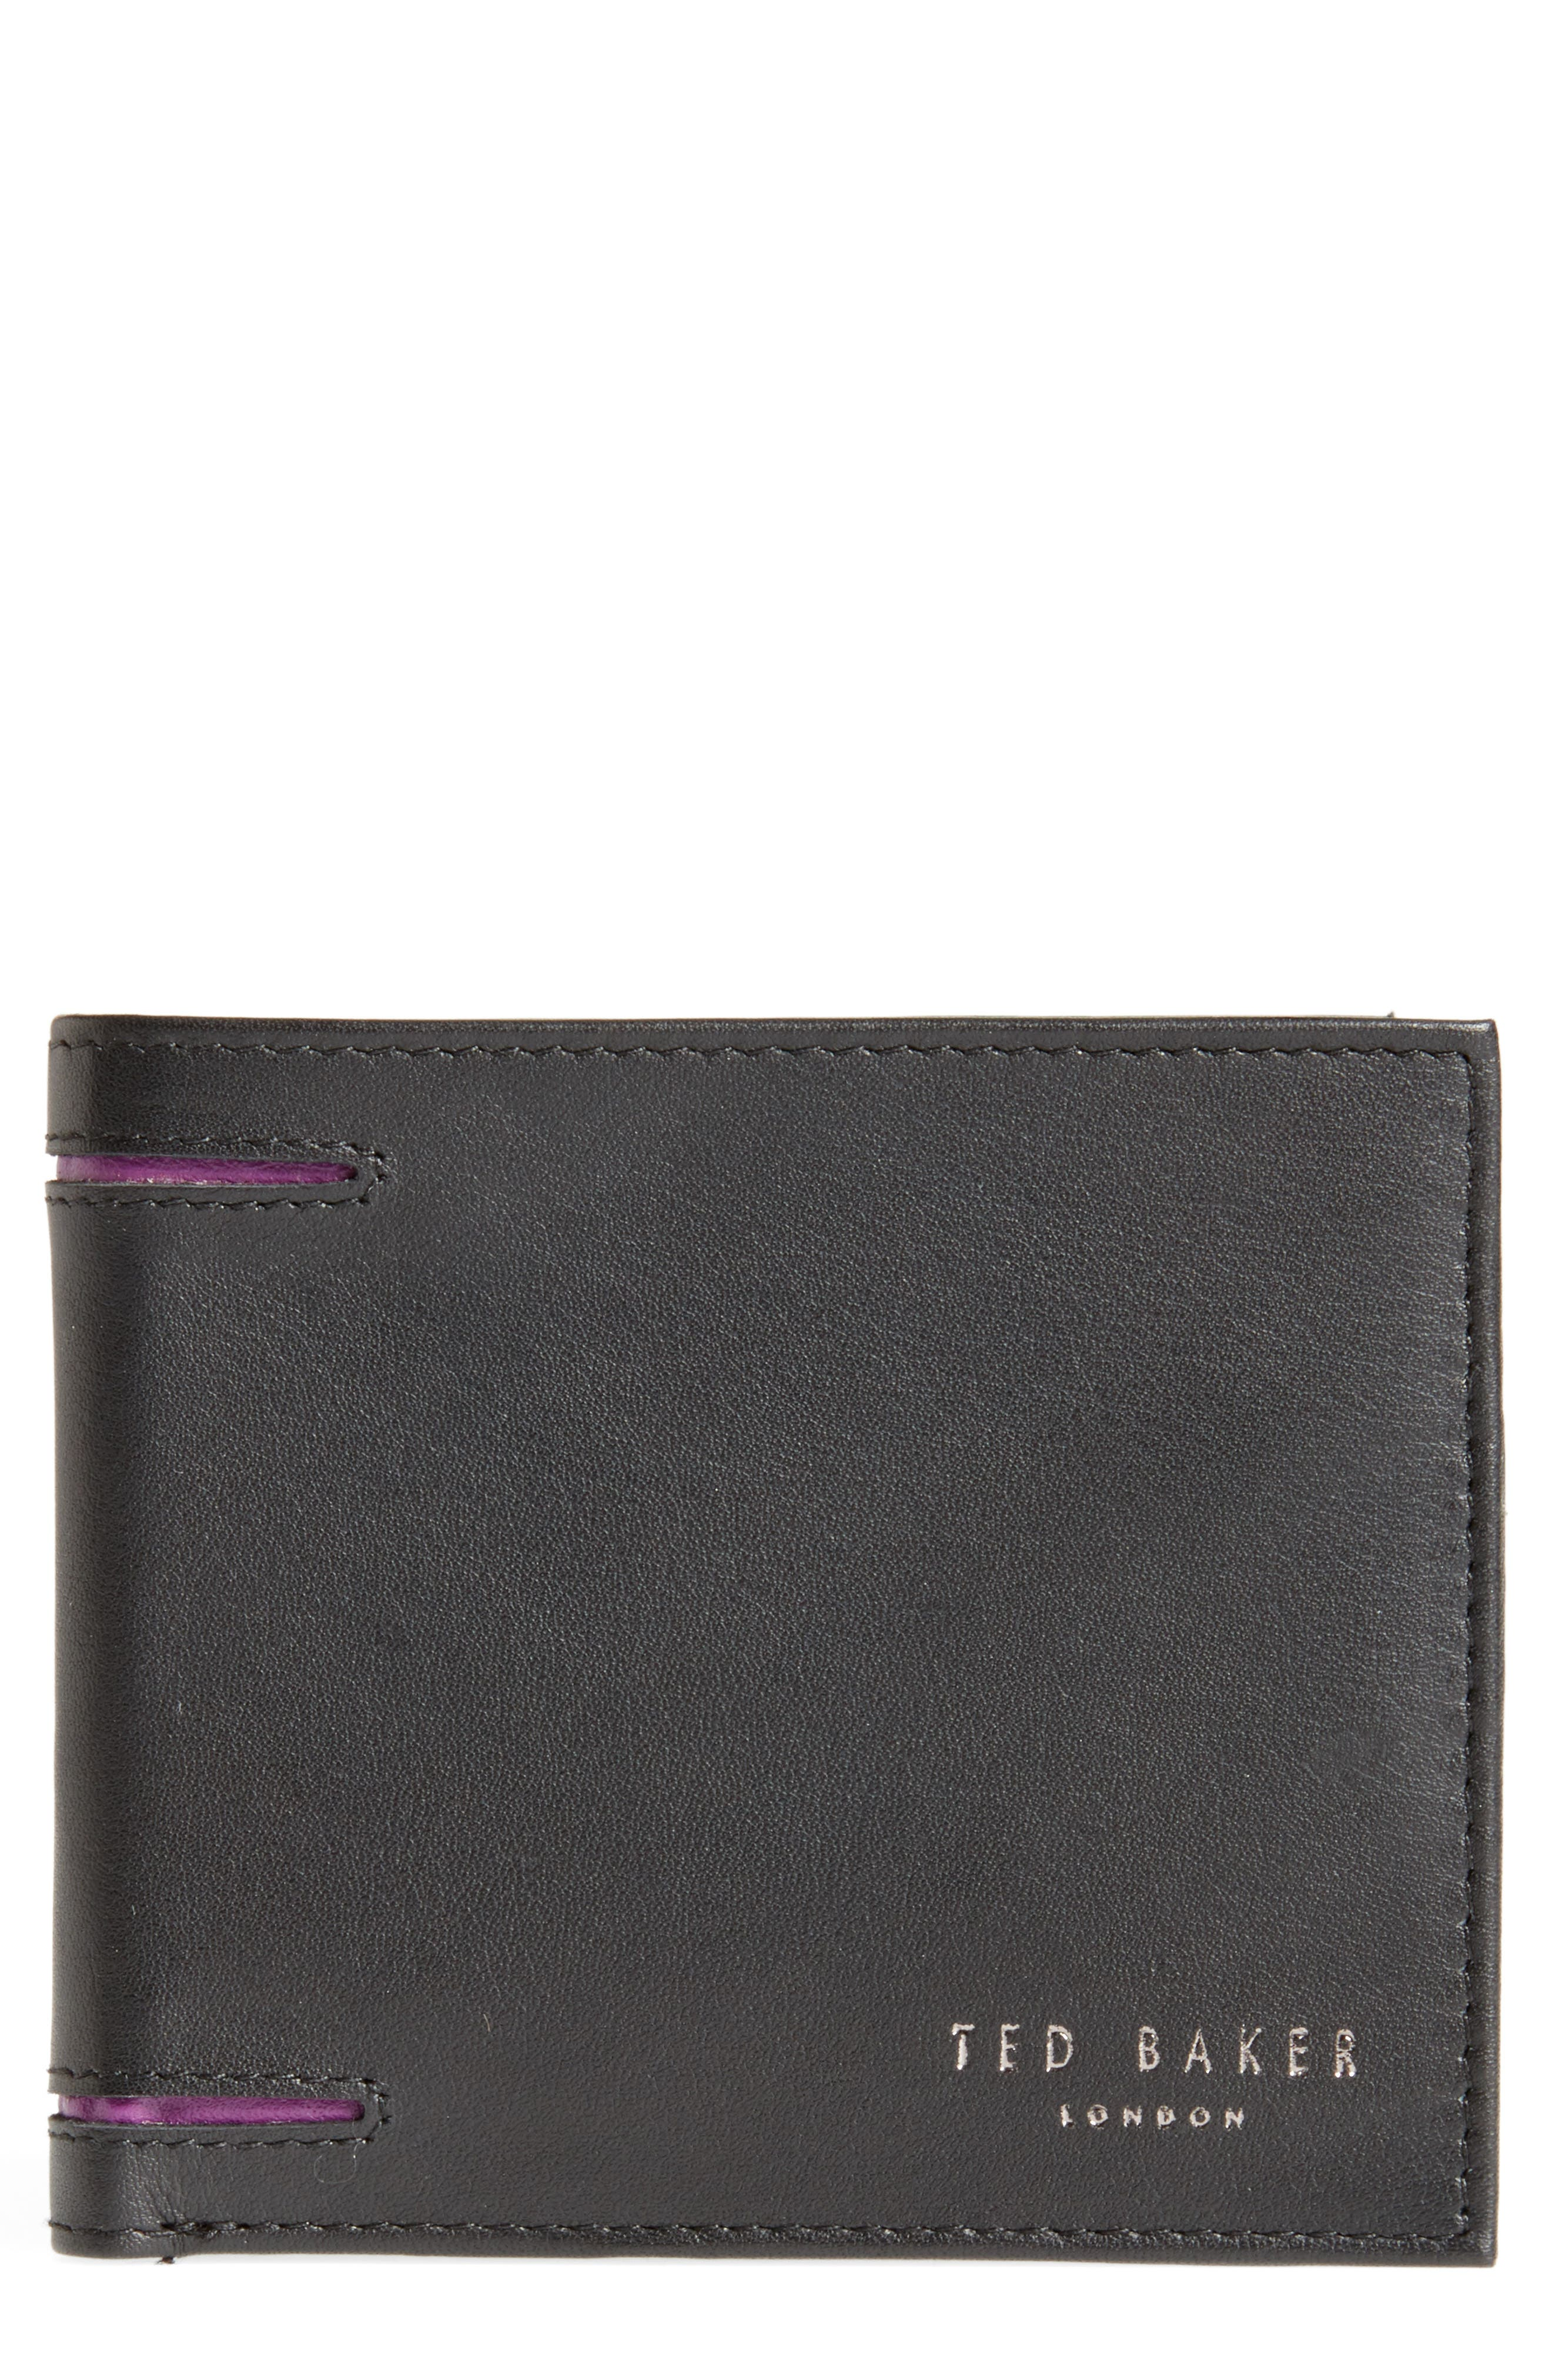 Figgy Inset Spine Leather Wallet,                             Main thumbnail 1, color,                             001